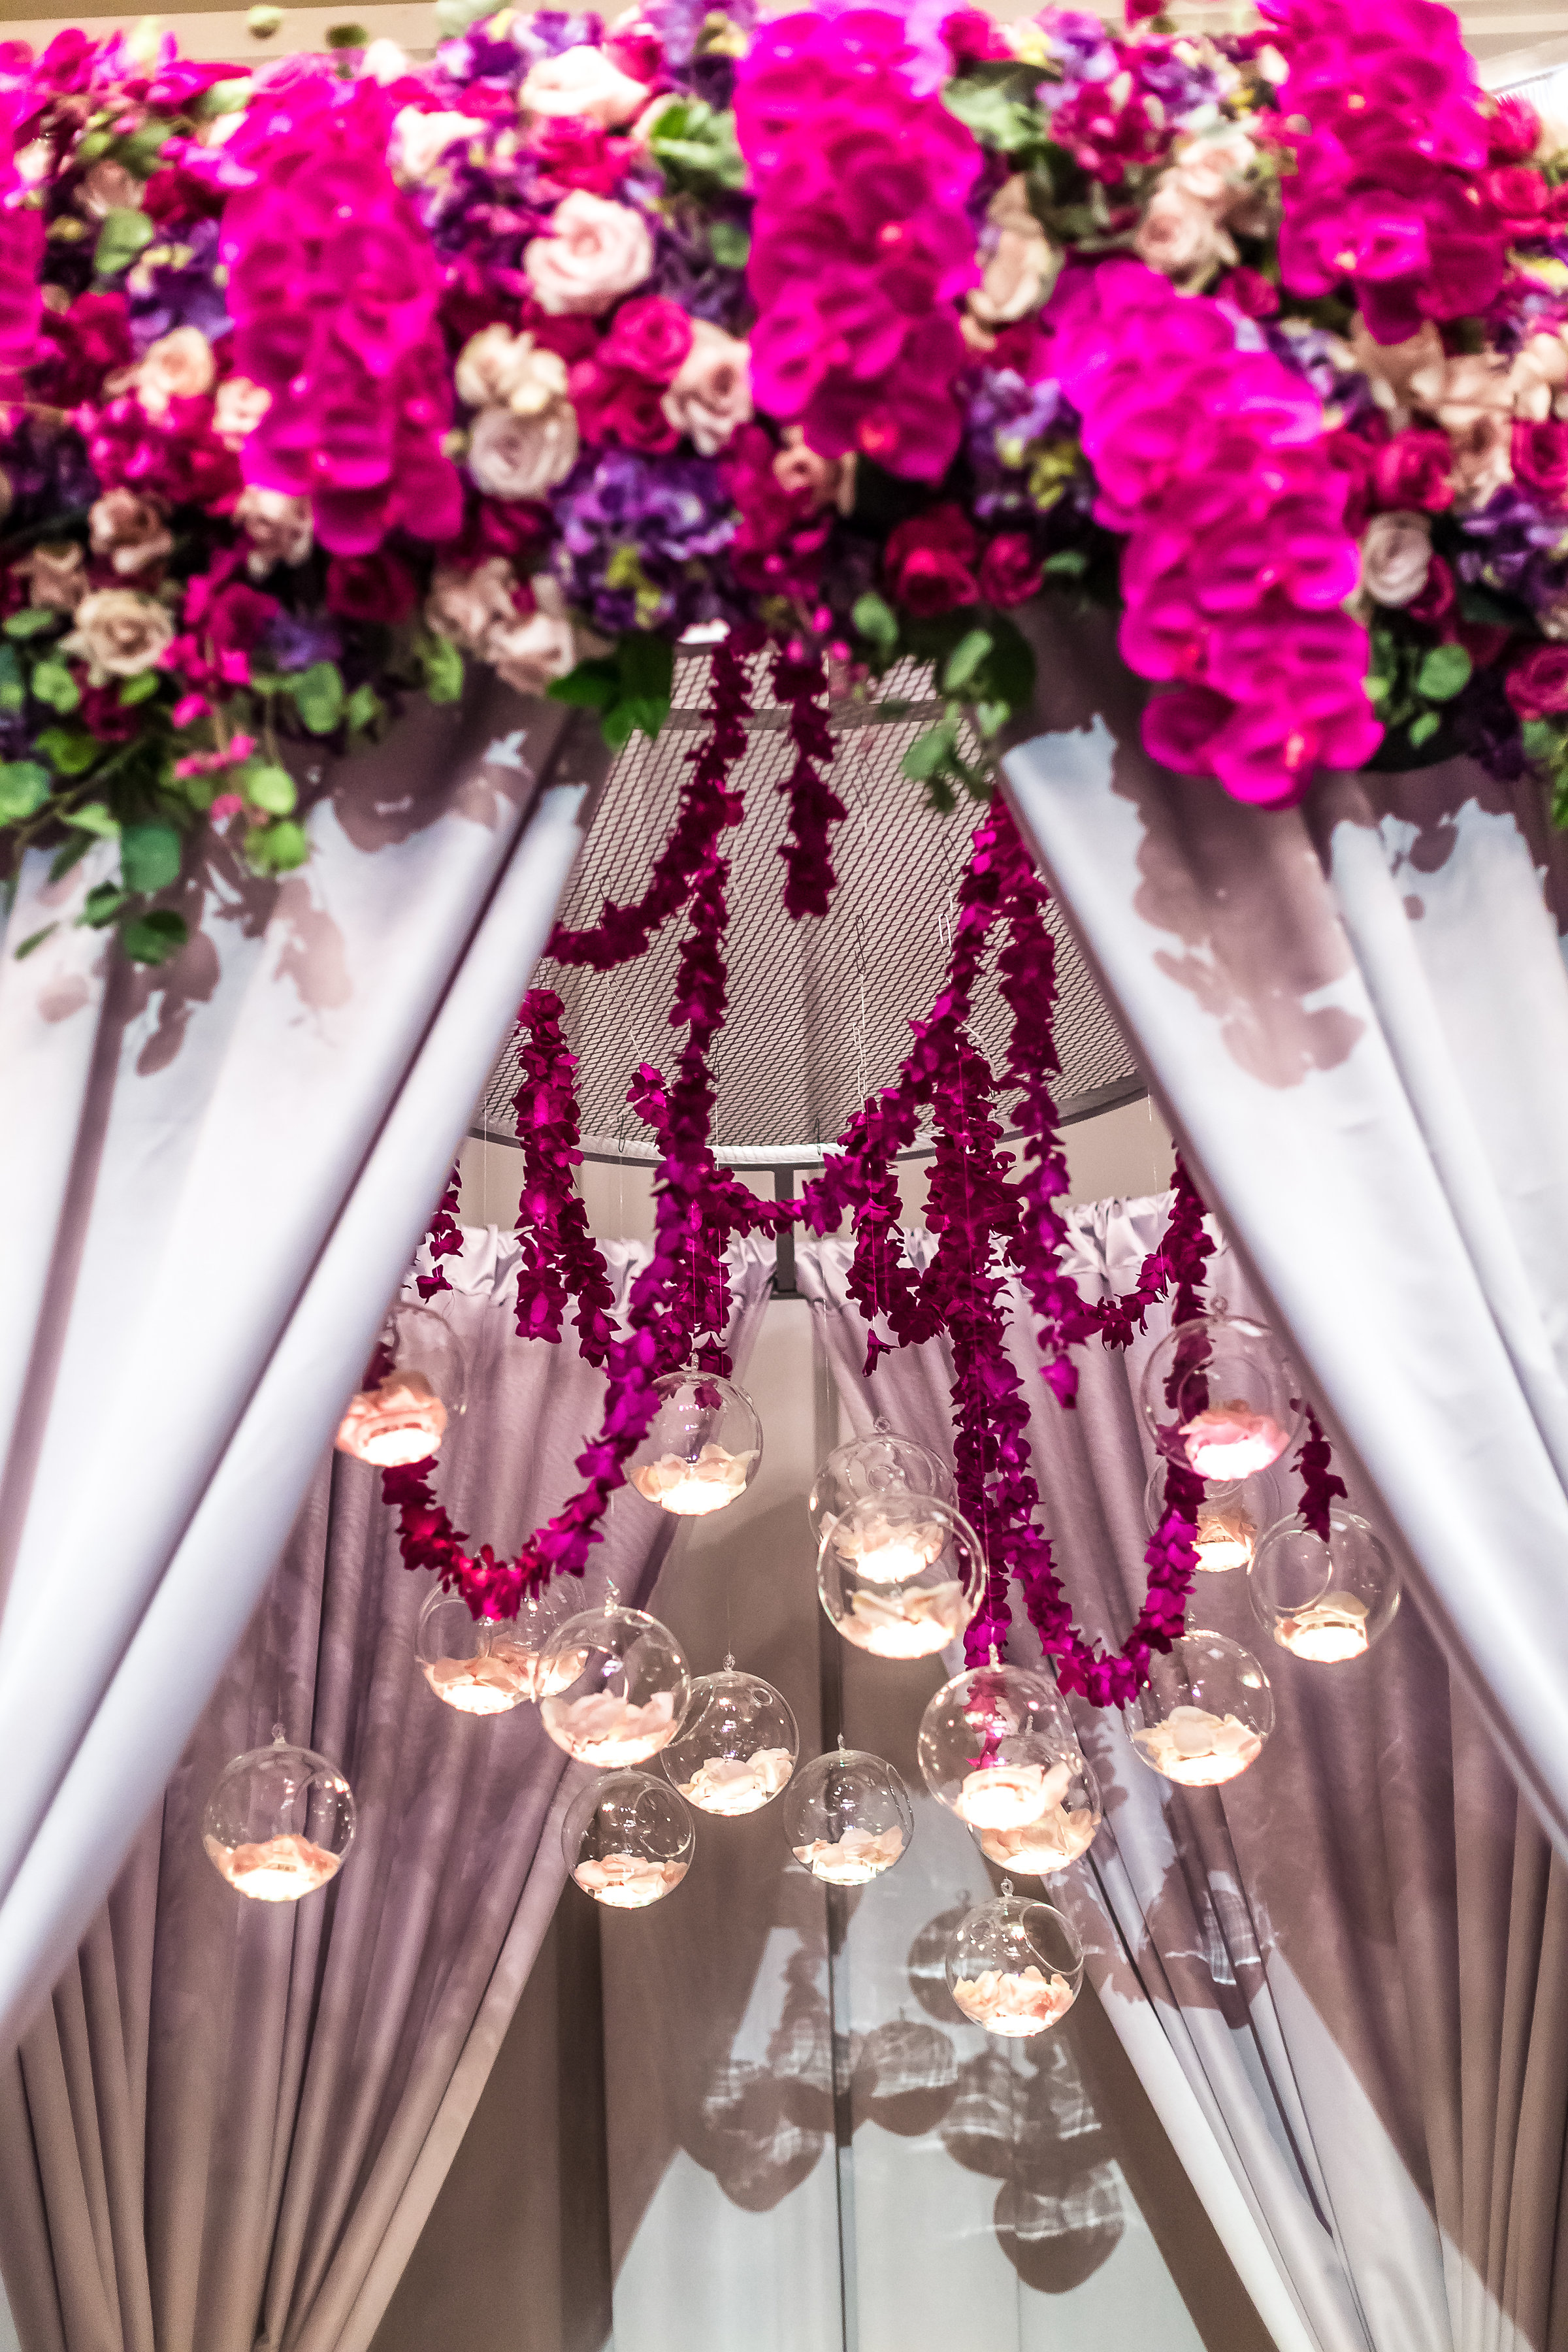 Wedding gazebo treatment with hanging lights and orchids.Wedding Planner: Andrea Eppolito Events    Photography  Brian Leahy    Videography  HOO Films    Venue & Catering:  Mandarin Oriental  / Waldorf Astoria   Floral & Decor: Destinations by Design    Lighting: LED Unplugged    Music:  DJ Breeze II    Hair & Make Up: Amelia C & Co